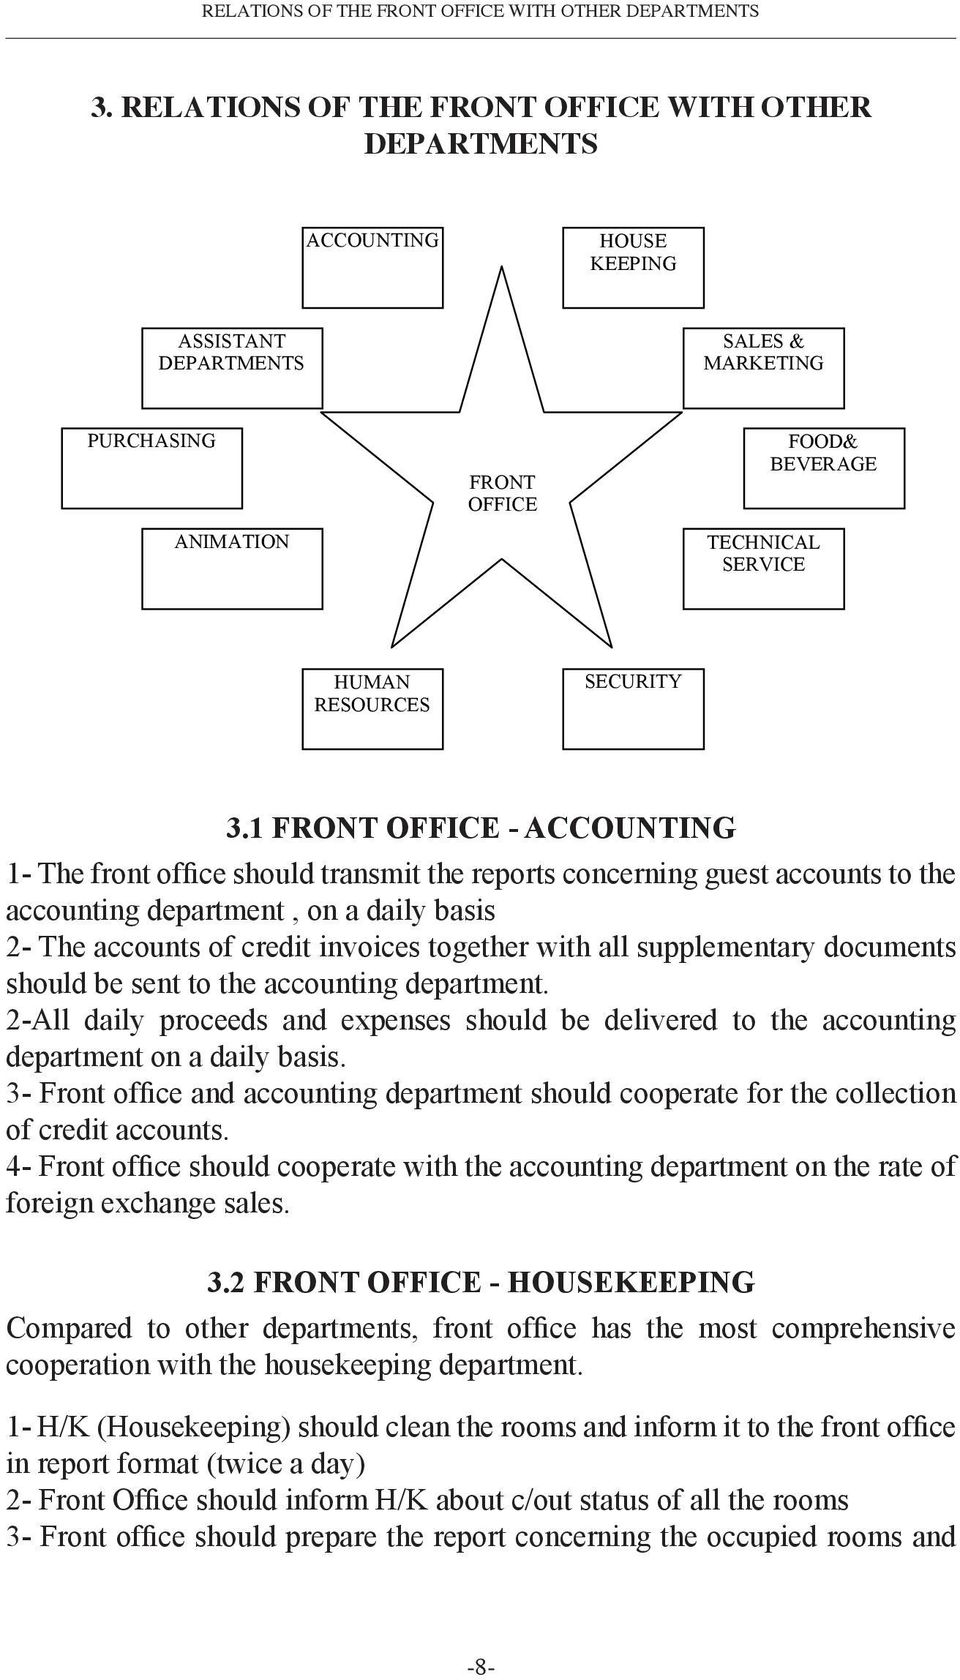 RELATIONS OF THE FRONT OFFICE WITH OTHER DEPARTMENTS RELATIONS OF THE FRONT OFFICE WITH OTHER DEPARTMENTS ACCOUNTING HOUSE KEEPING ASSISTANT DEPARTMENTS SALES & MARKETING PURCHASING ANIMATION FRONT